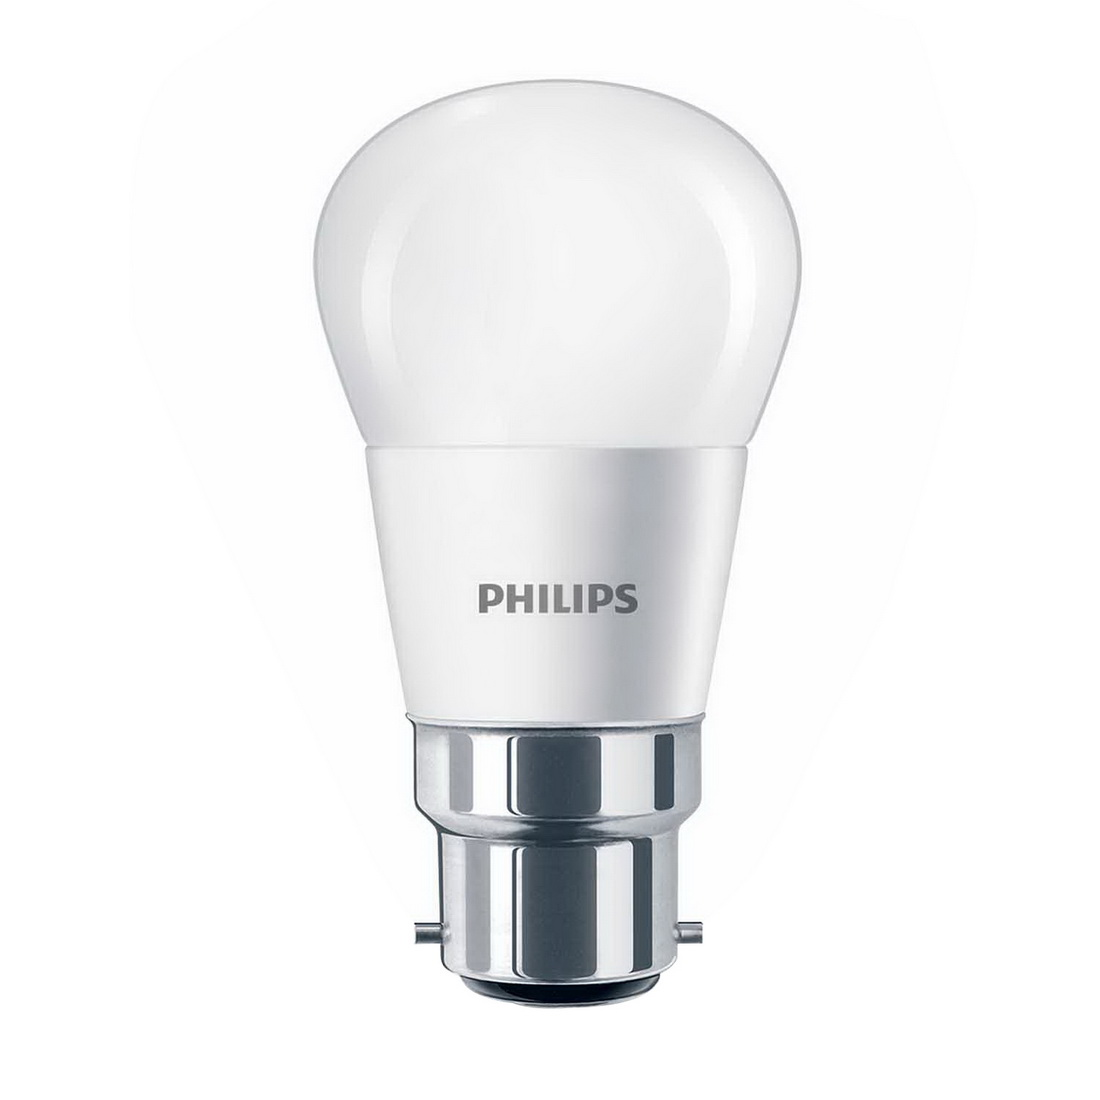 4W 250lm B22 2700K P45 Non-Dimmable LED Lusture Warm White Frosted